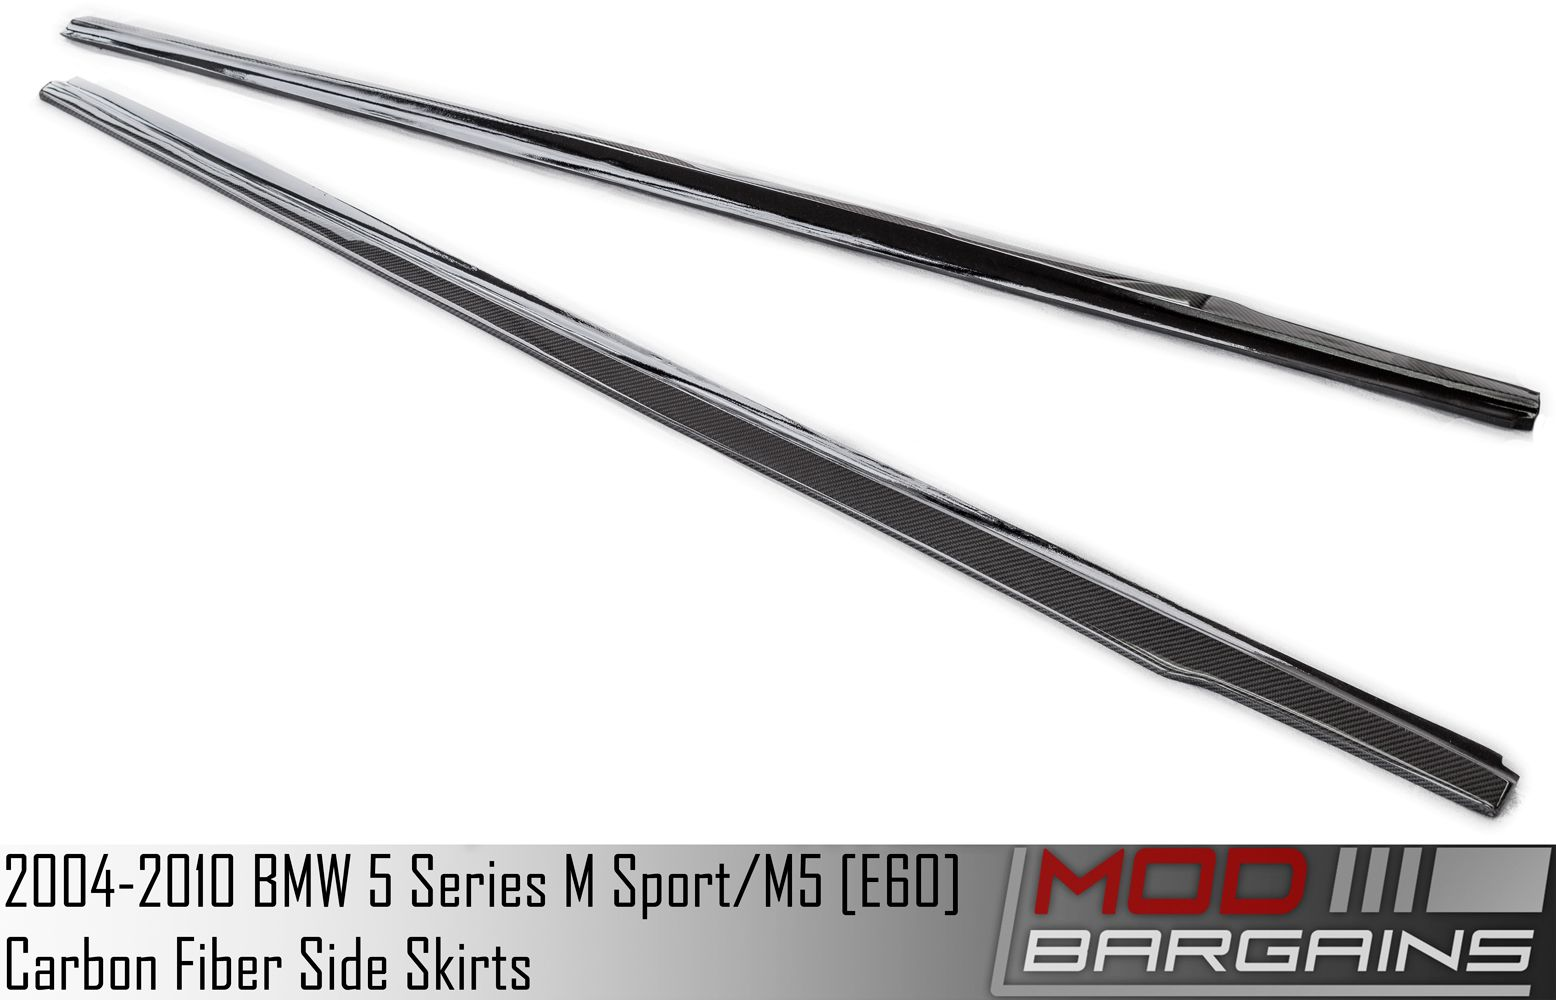 Carbon Fiber Side Skirts for 2004-2010 BMW M5 and 5 Series (w/ M Sport) [E60] BMSS6001